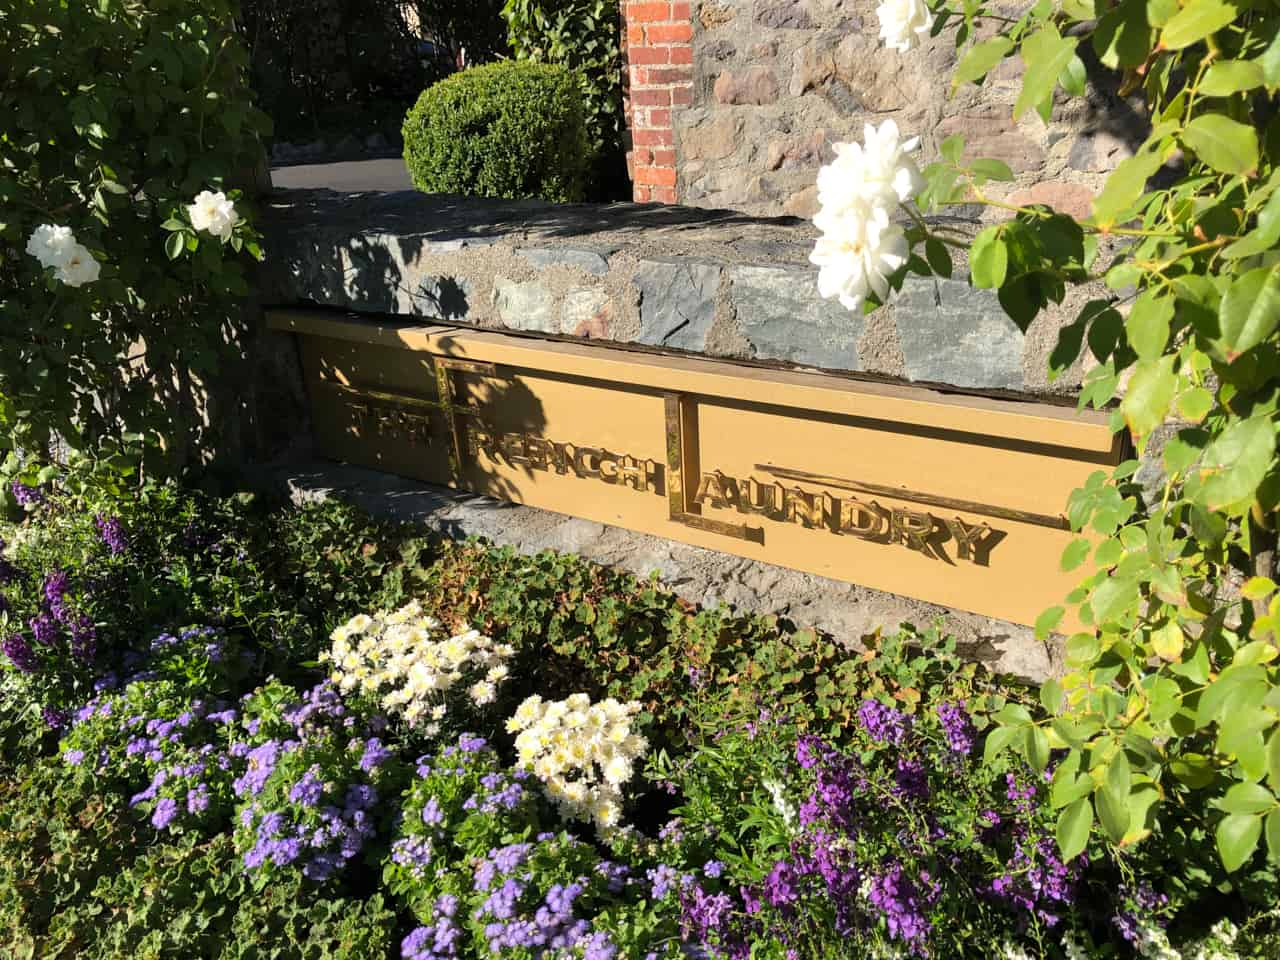 The French Laundry sign in front of the restaurant in bright sunlight.